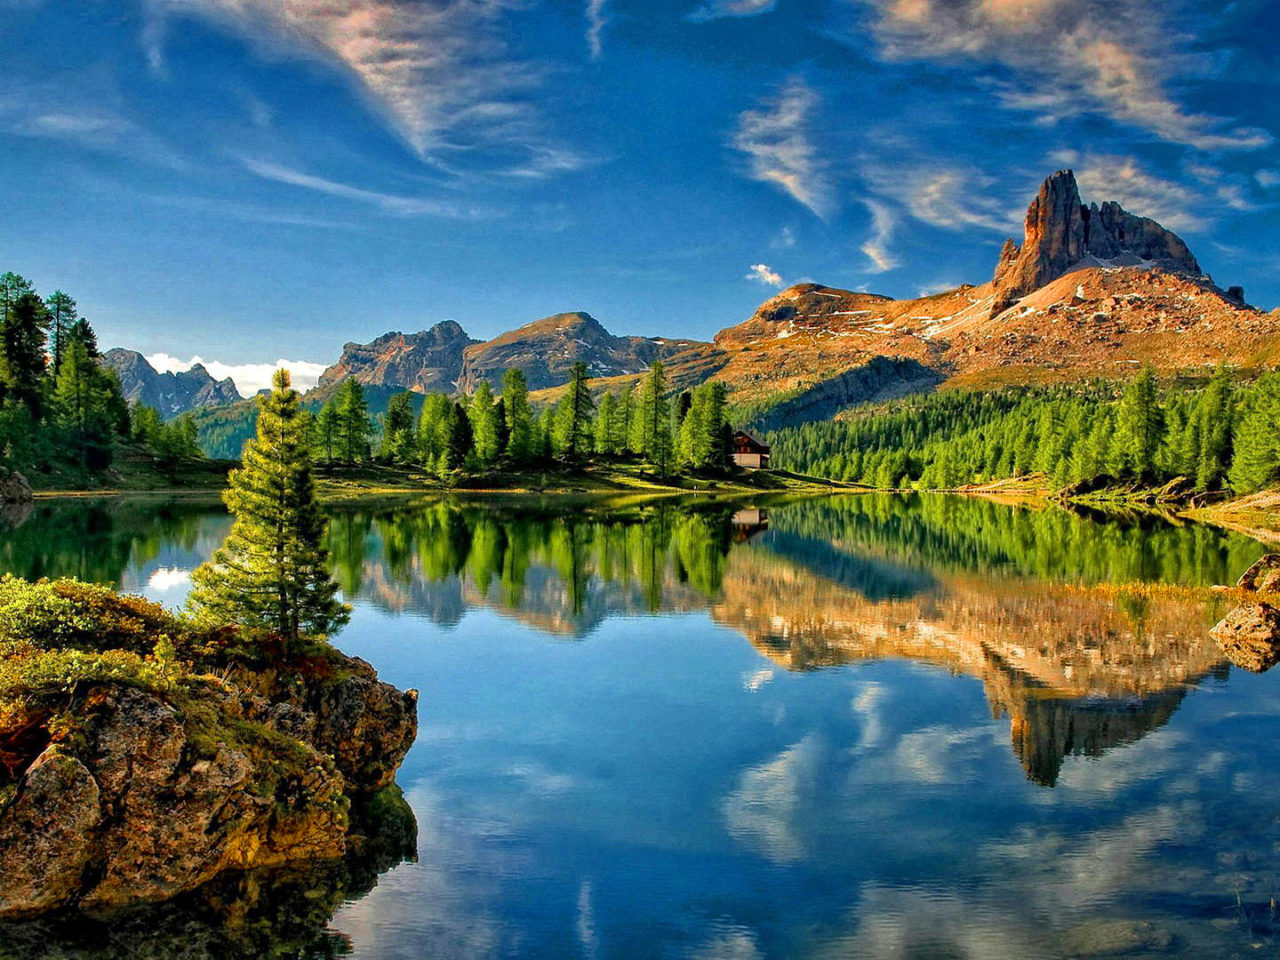 Lake Mountain Sky Reflection Desktop Wallpapers High